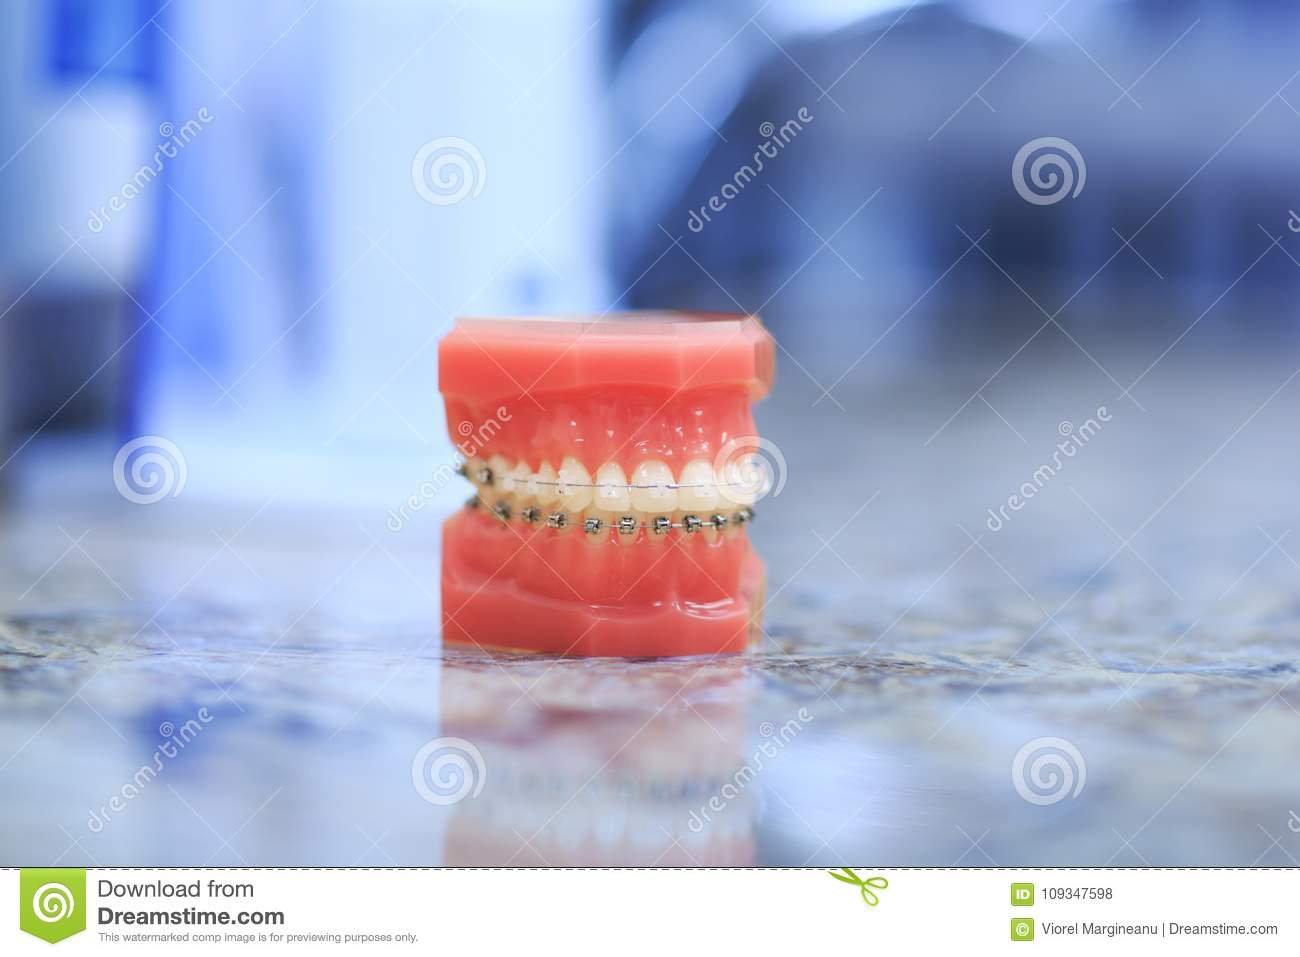 Tooth model with metal wired dental braces. Orthodontic dental model.